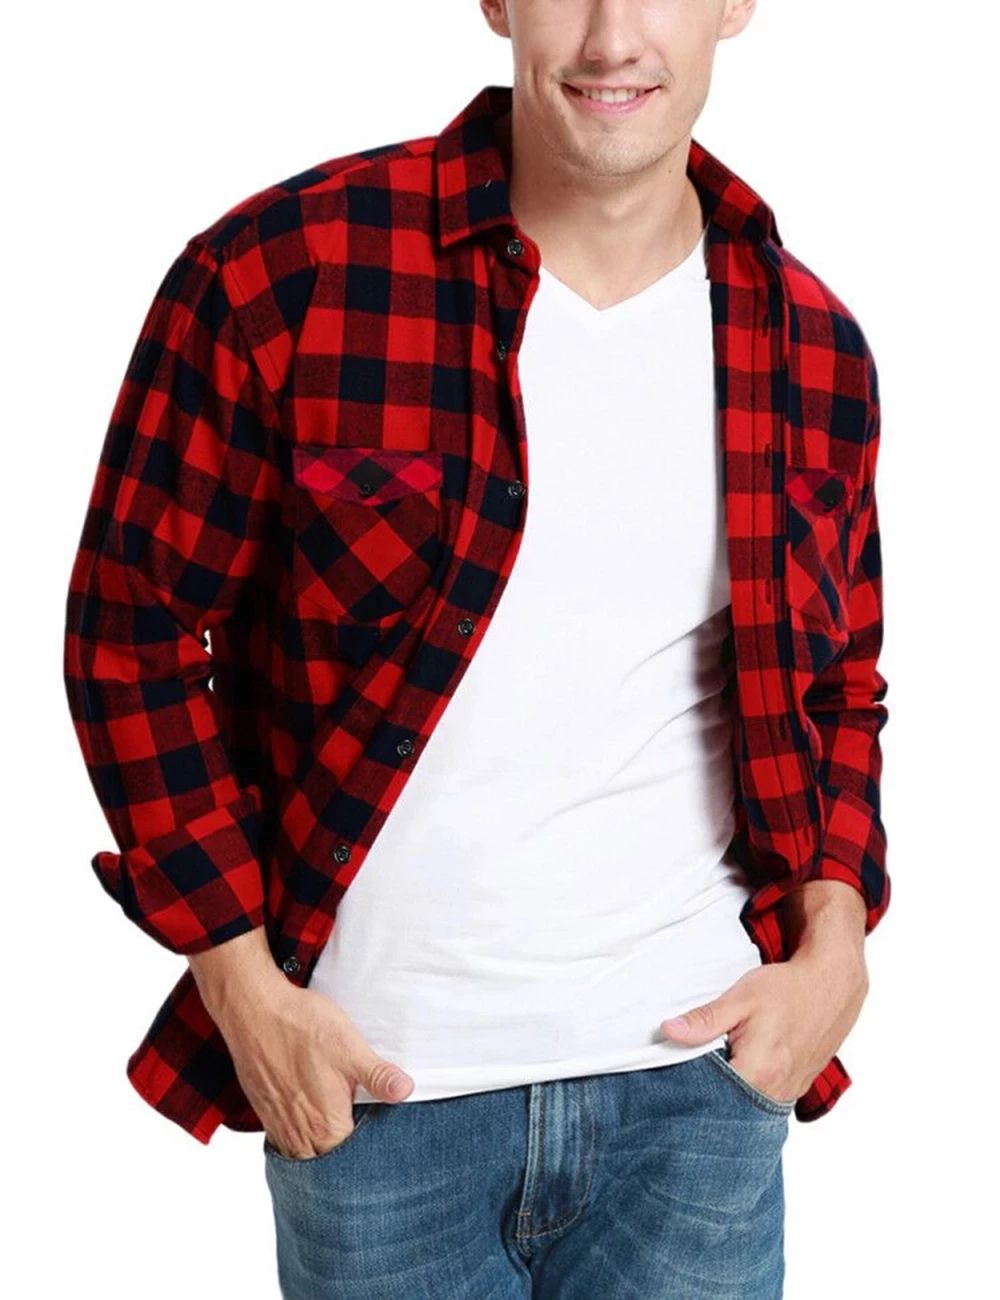 Check Shirts Red and Black